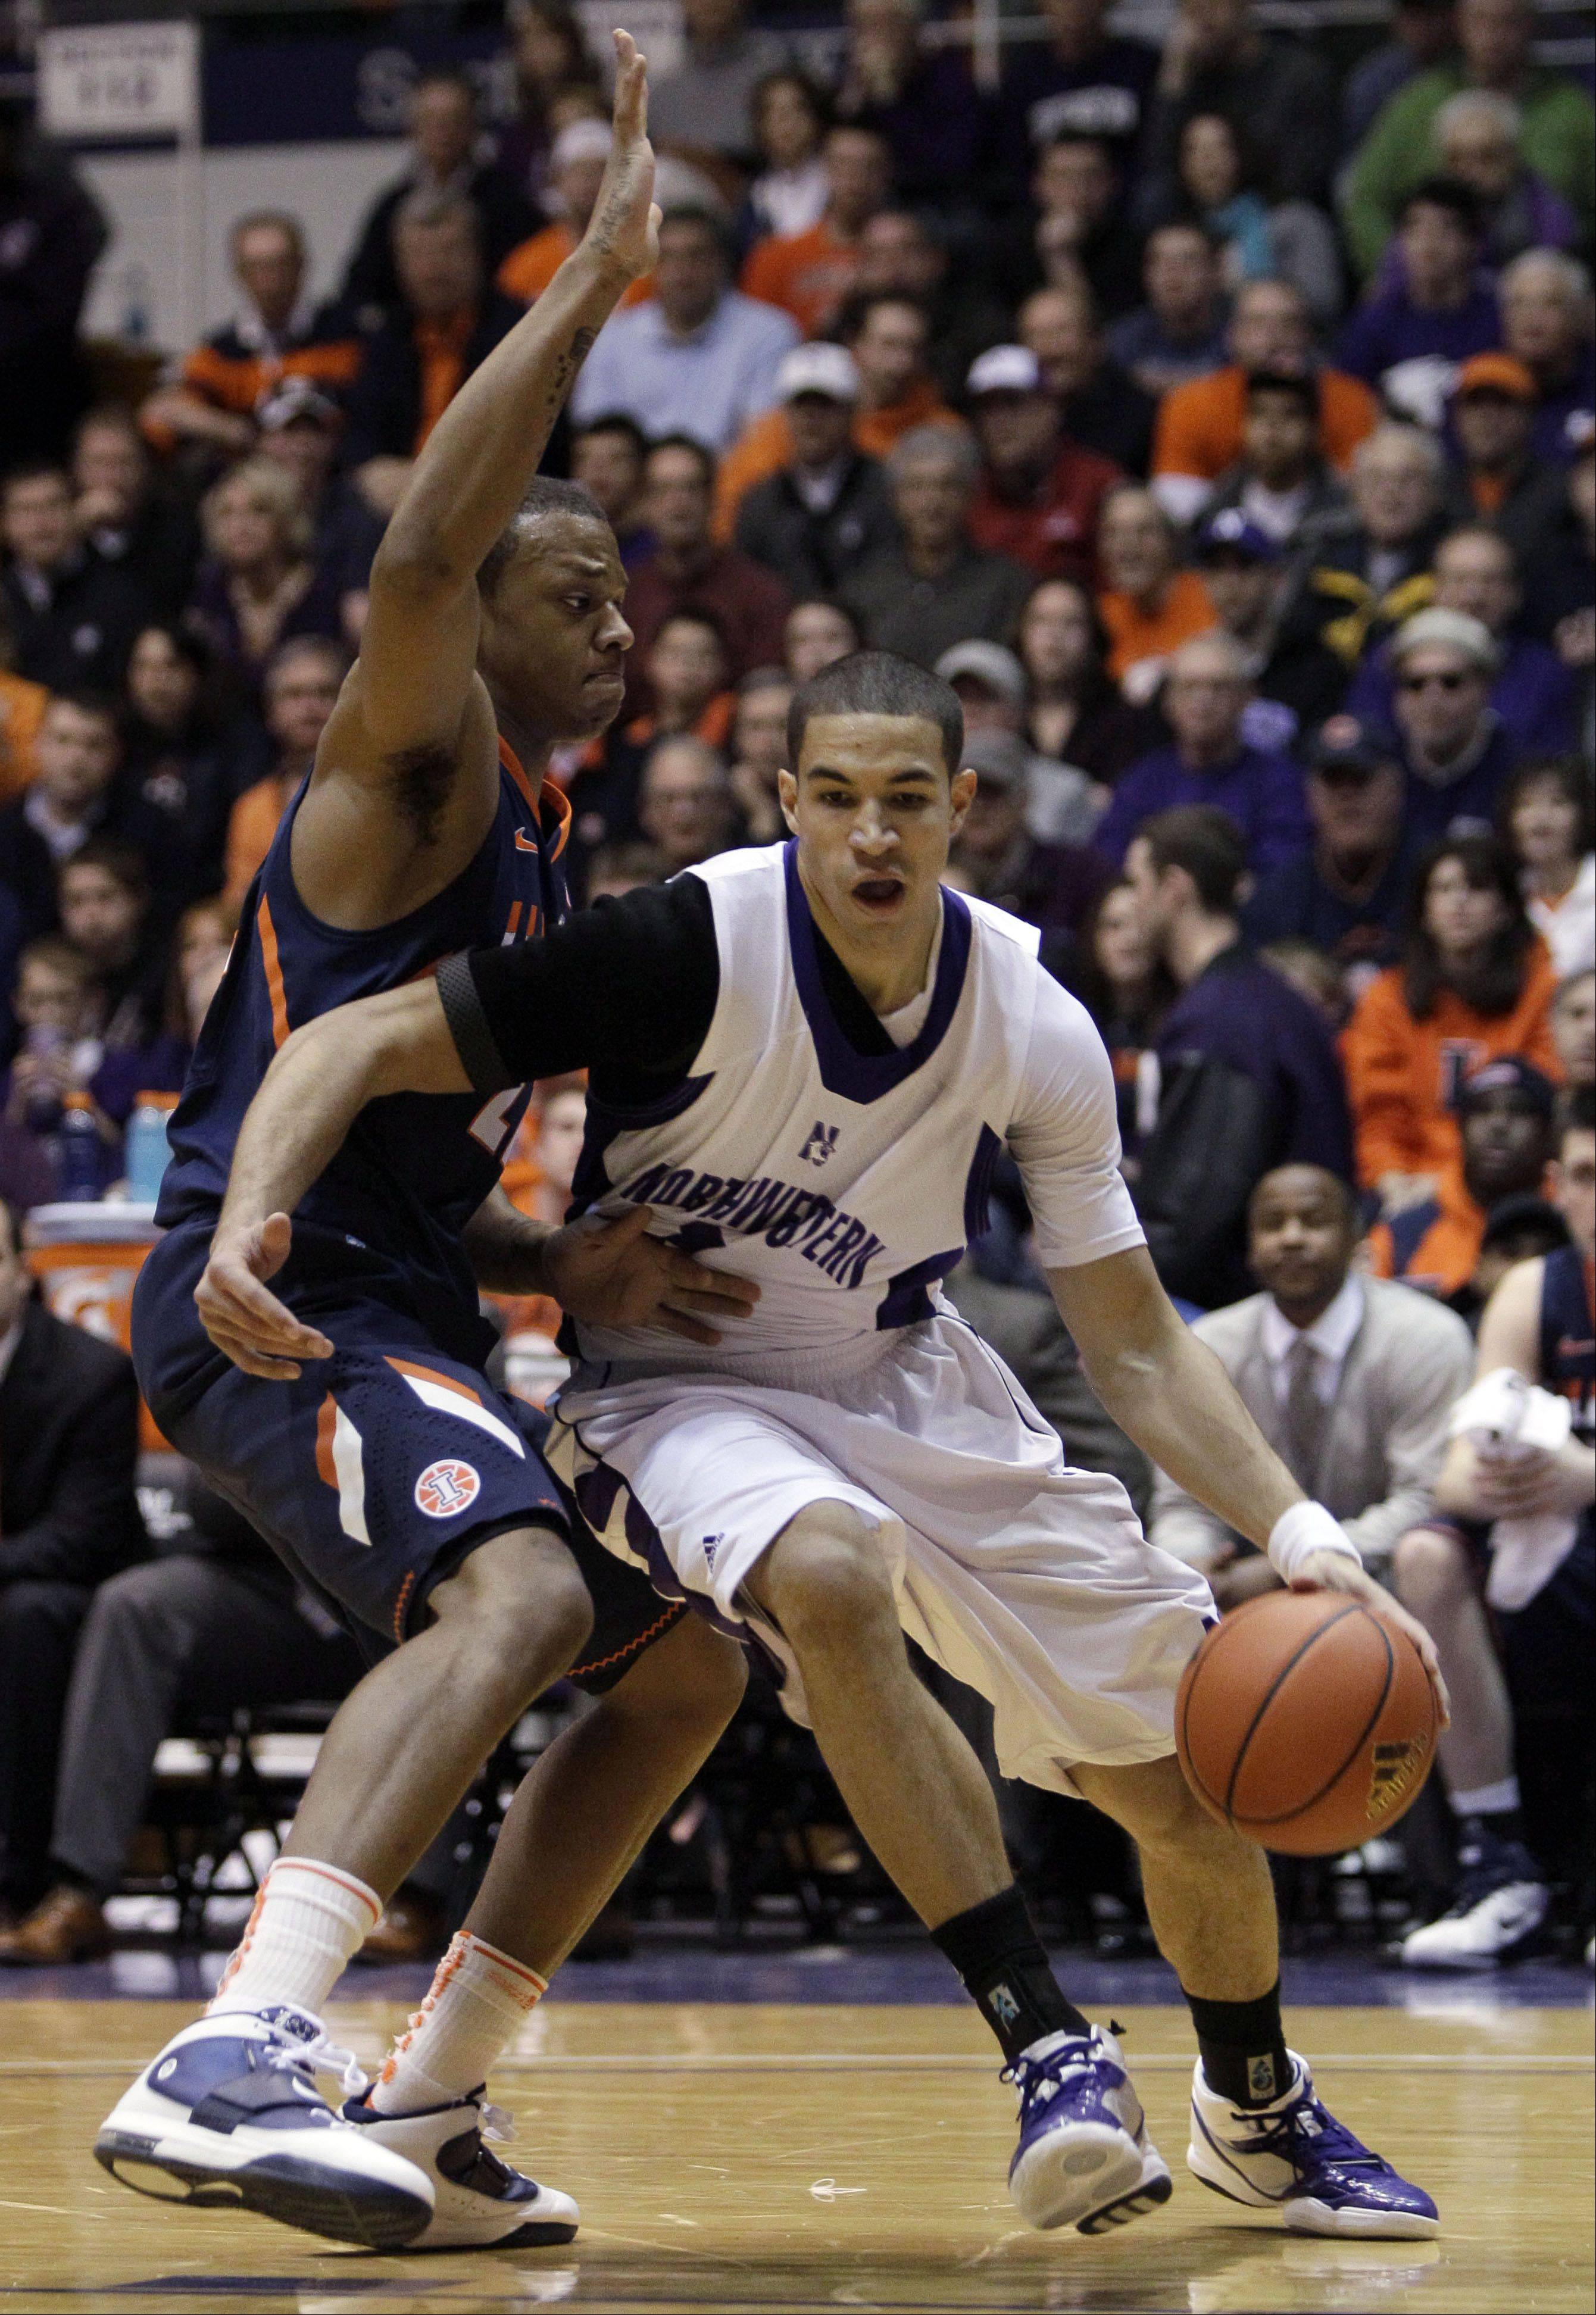 Naperville's Drew Crawford, right, returns for another season of Northwestern basketball.